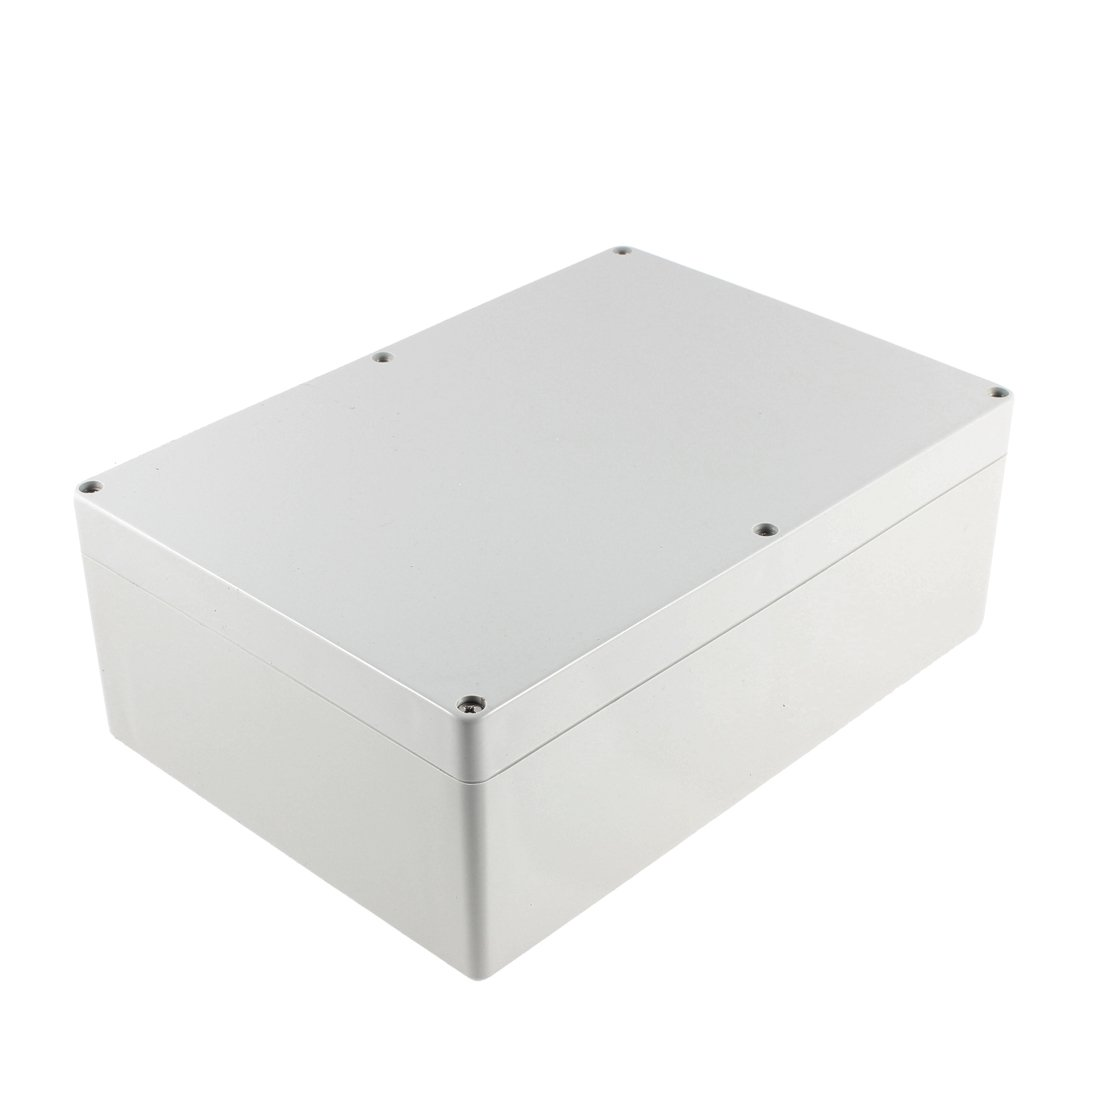 uxcell Plastic Project Junction Box 262 x 182 x 95mm